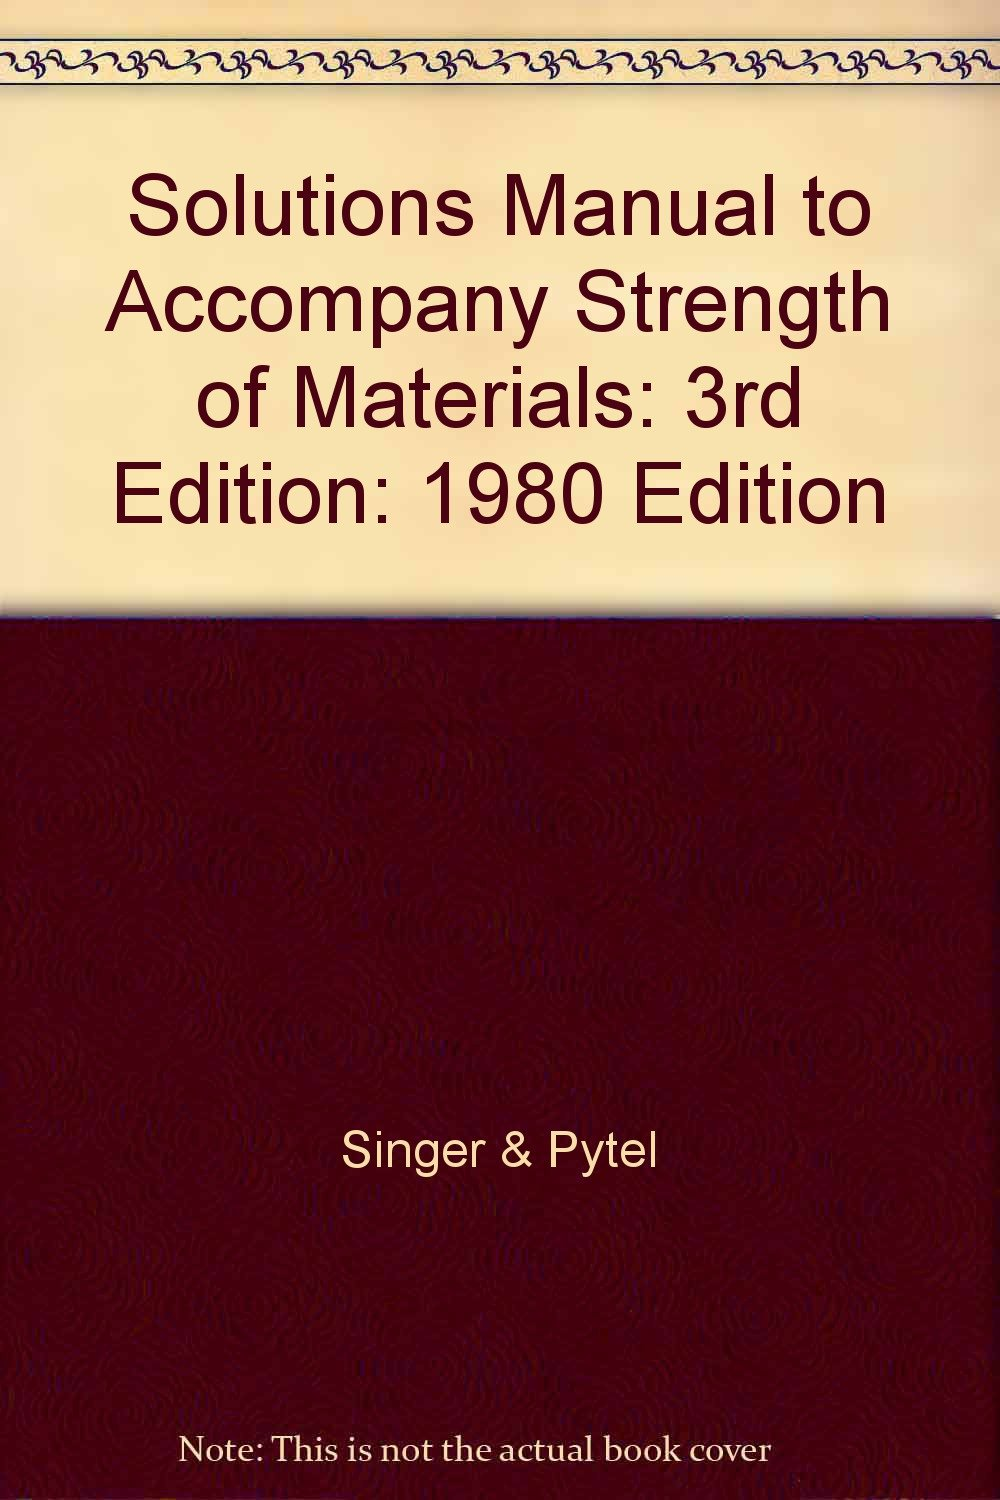 Solutions Manual to Accompany Strength of Materials: 3rd Edition: 1980  Edition: Singer & Pytel: Amazon.com: Books